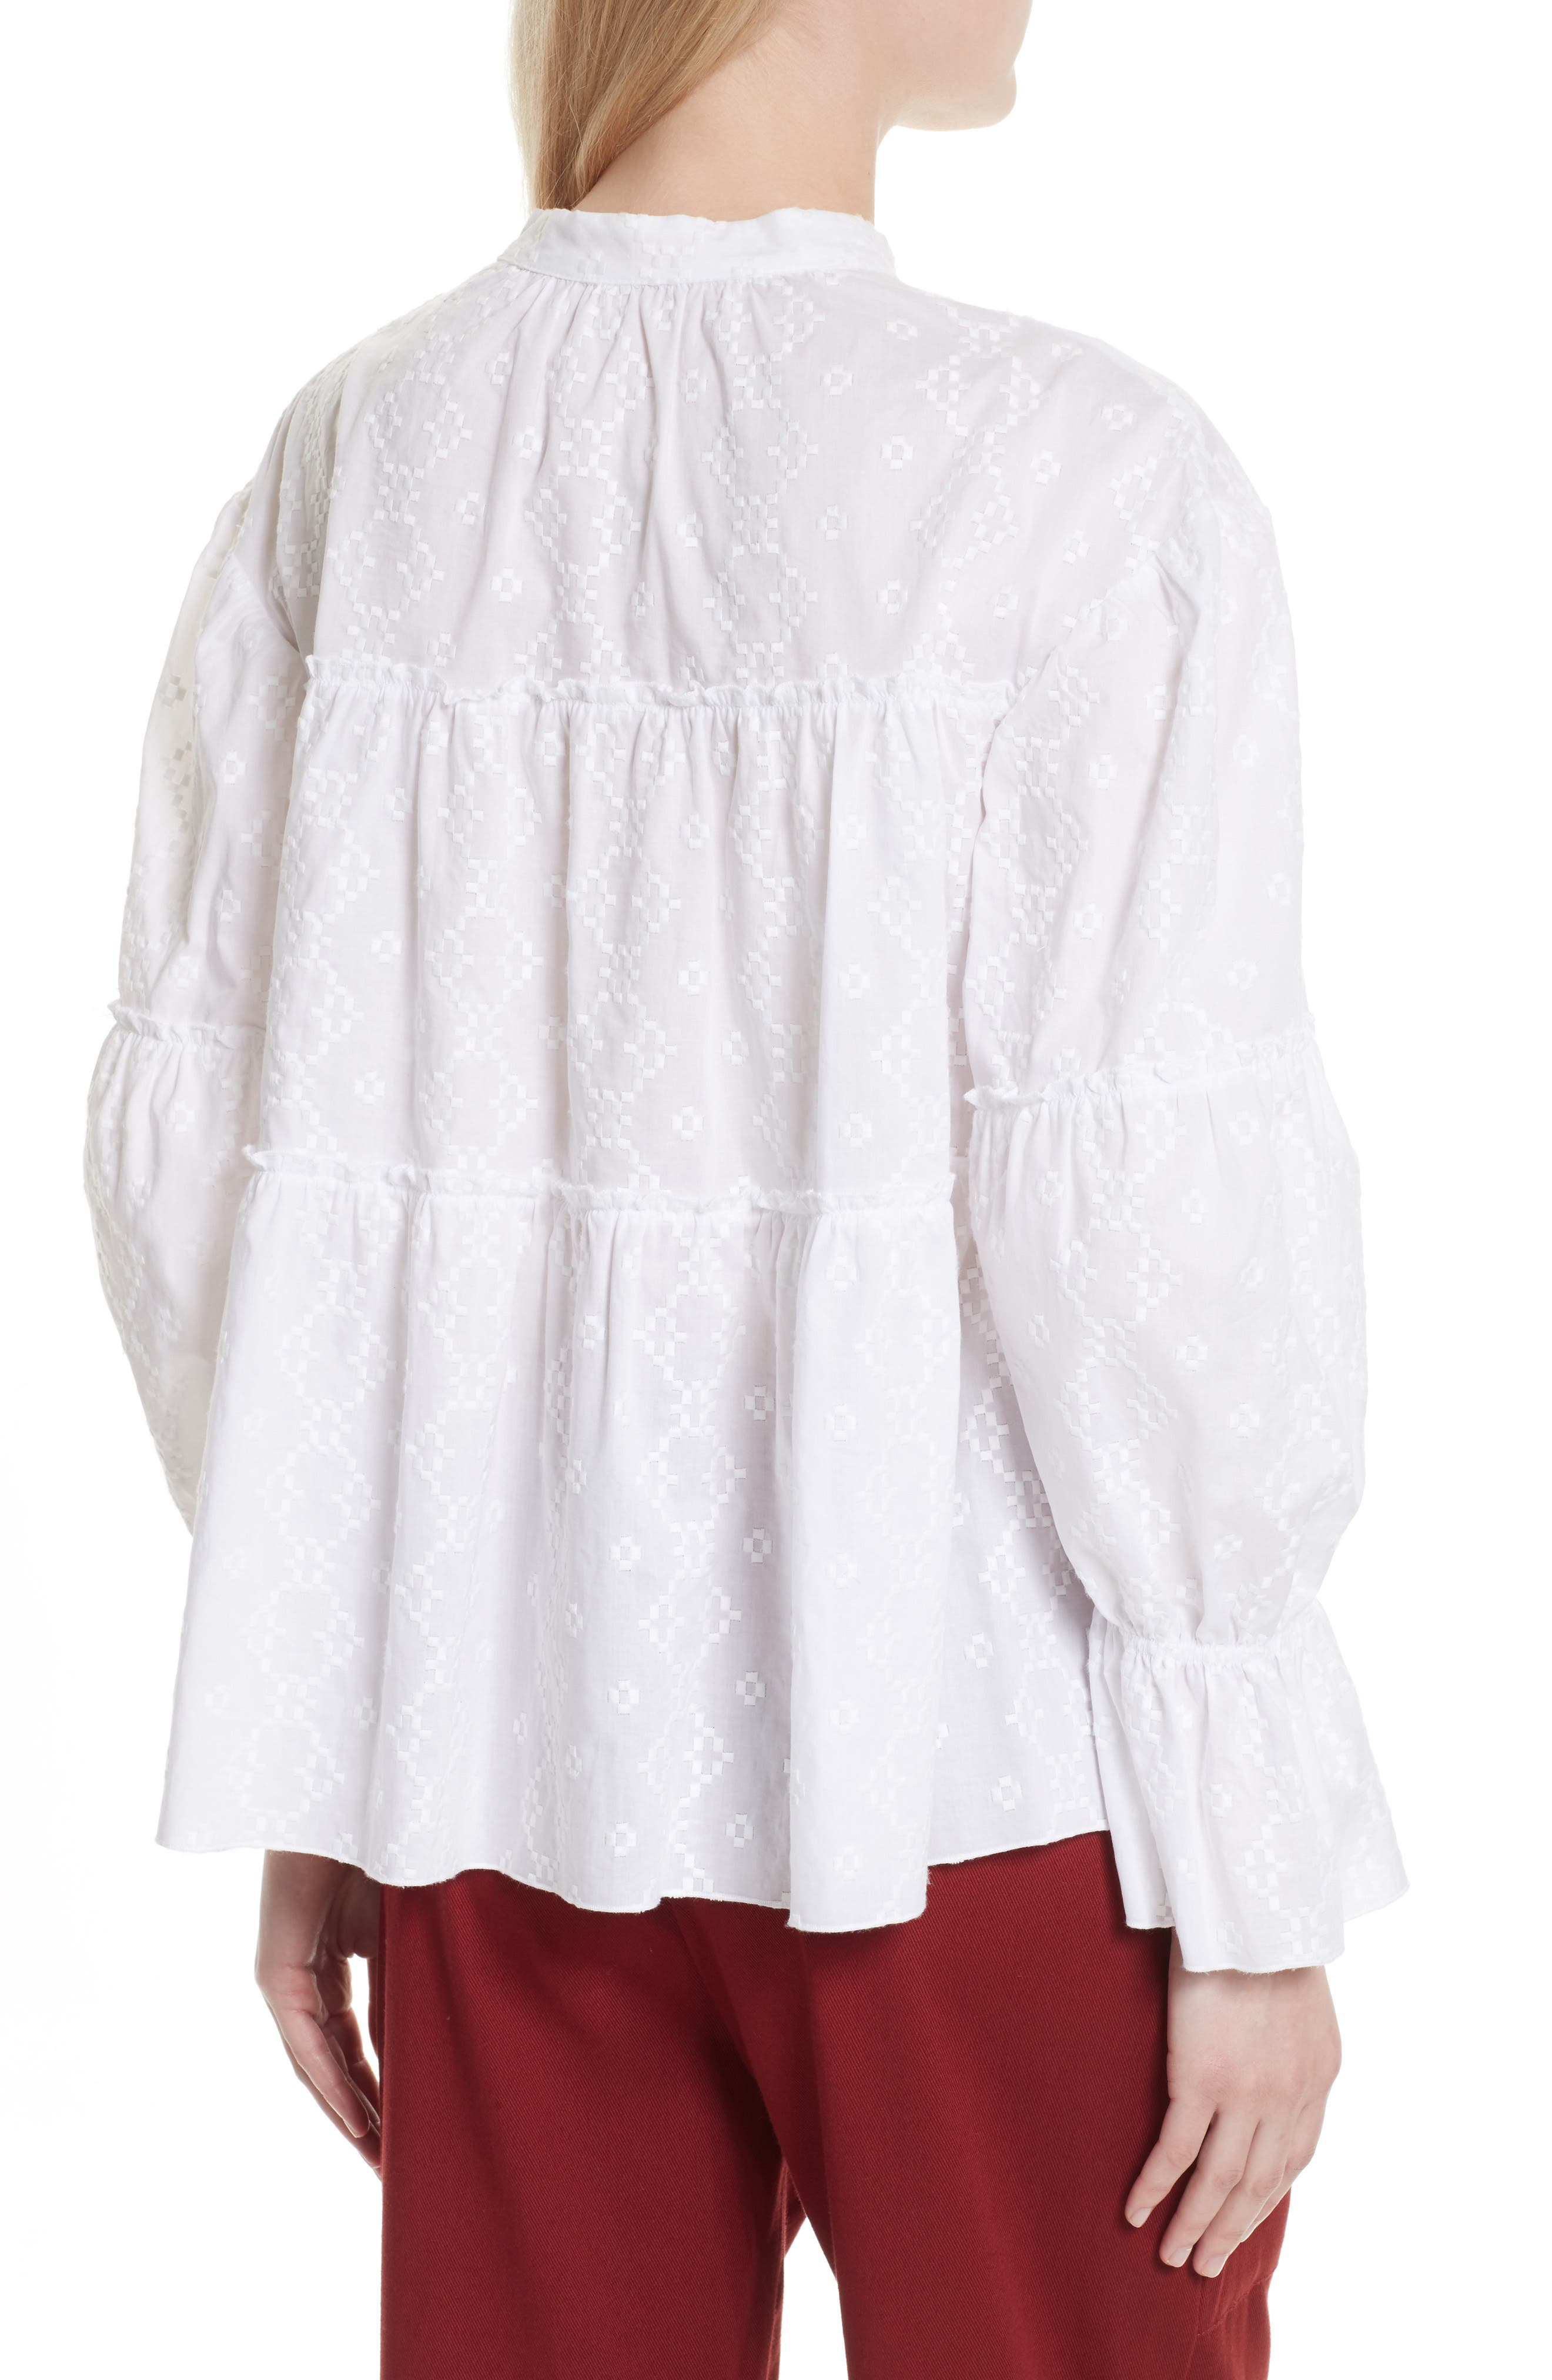 Embroidered Eyelet Blouse,                             Alternate thumbnail 2, color,                             White